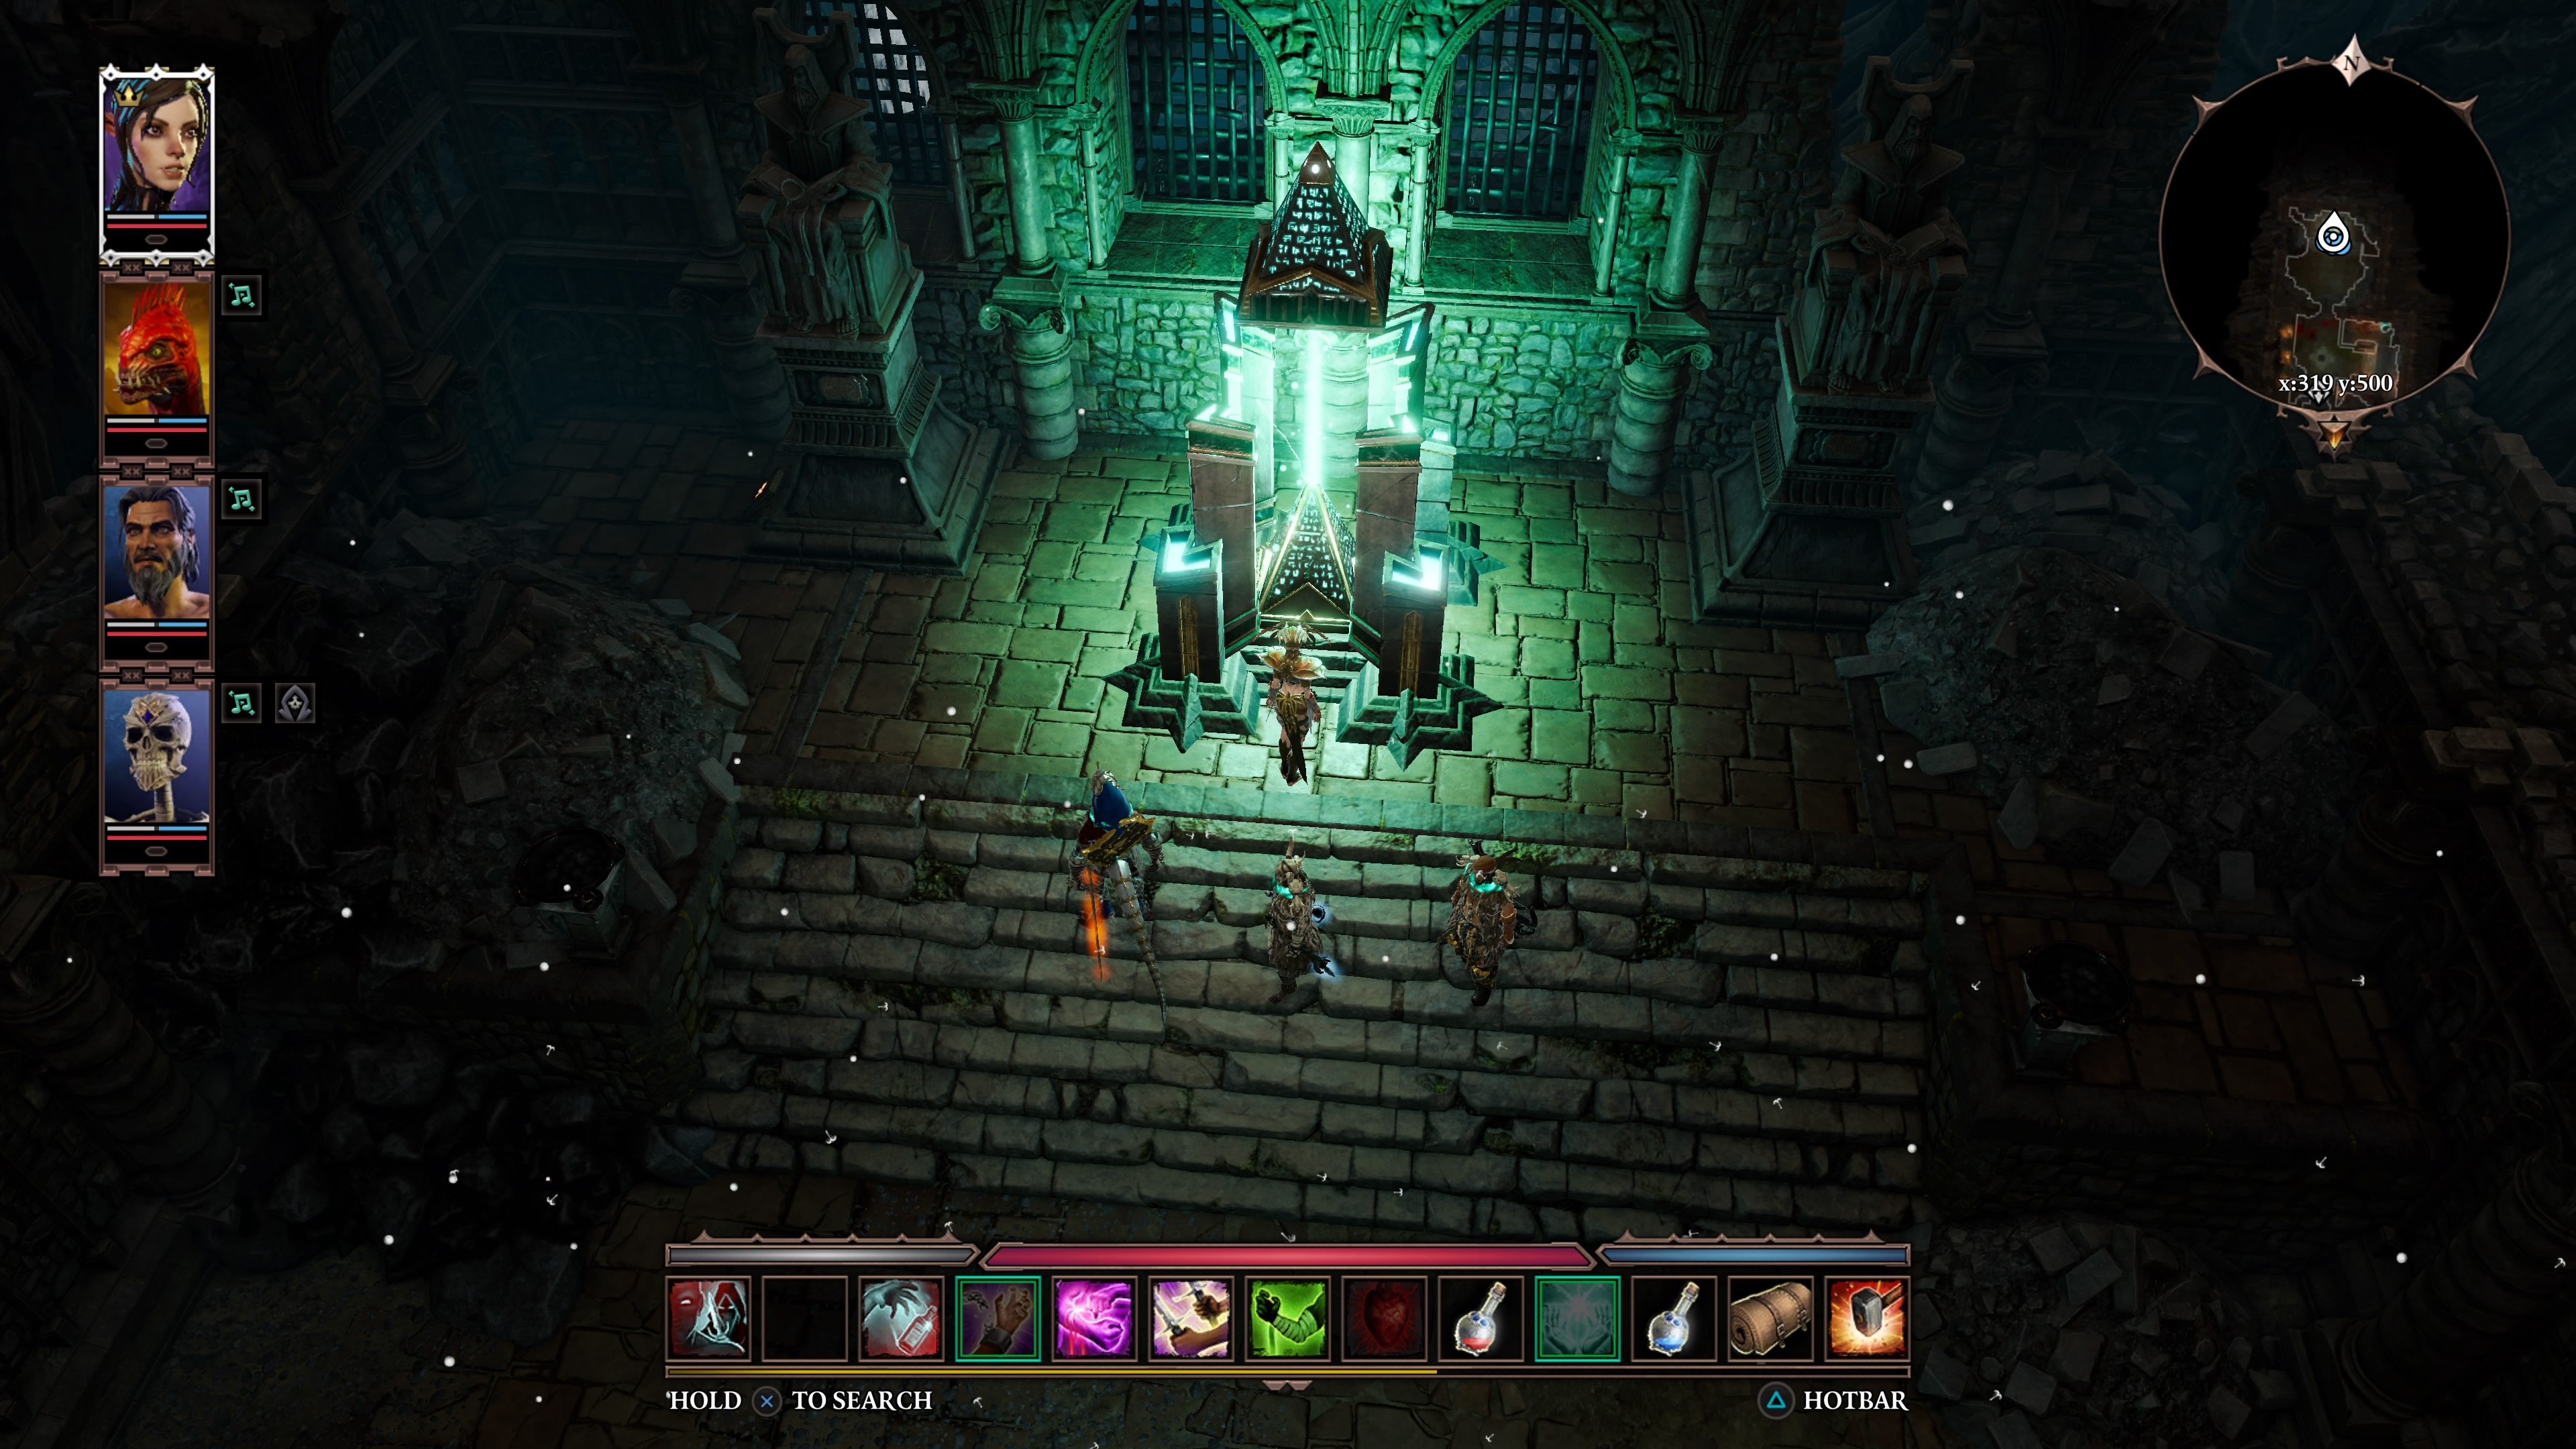 Divinity: Original Sin 2 - Definitive Edition - PS4 Review